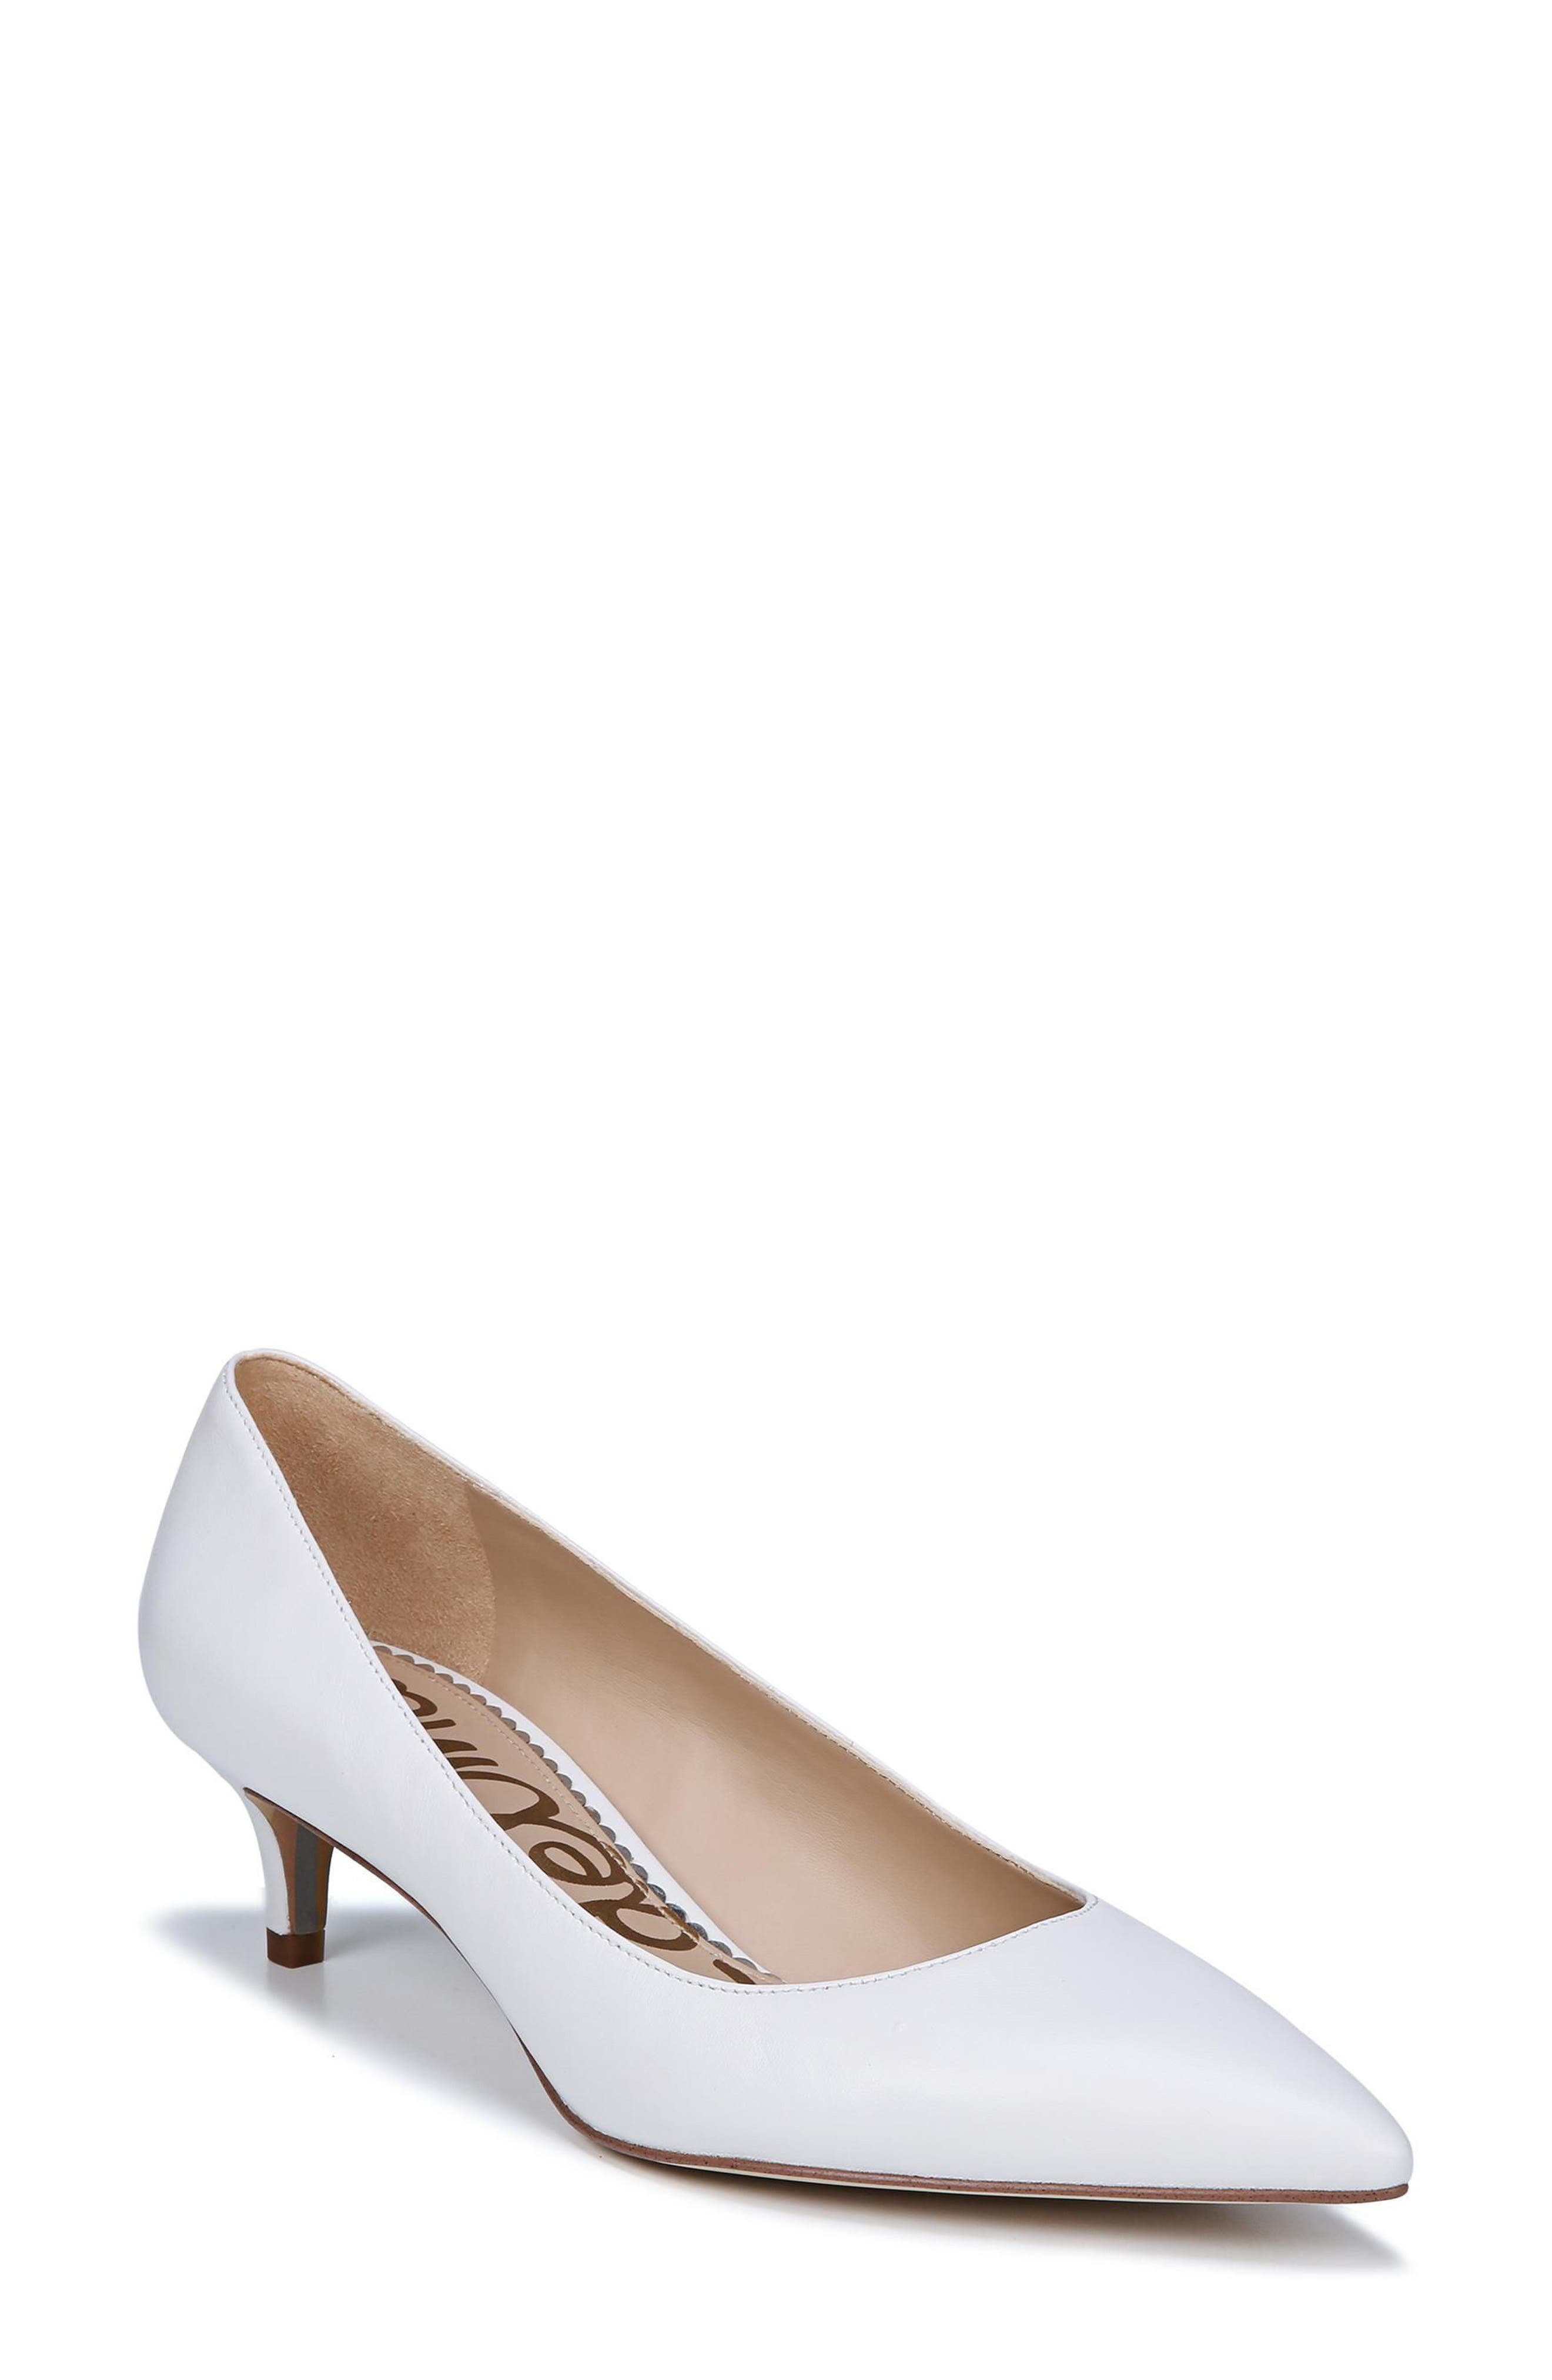 Dori Pump,                         Main,                         color, BRIGHT WHITE LEATHER